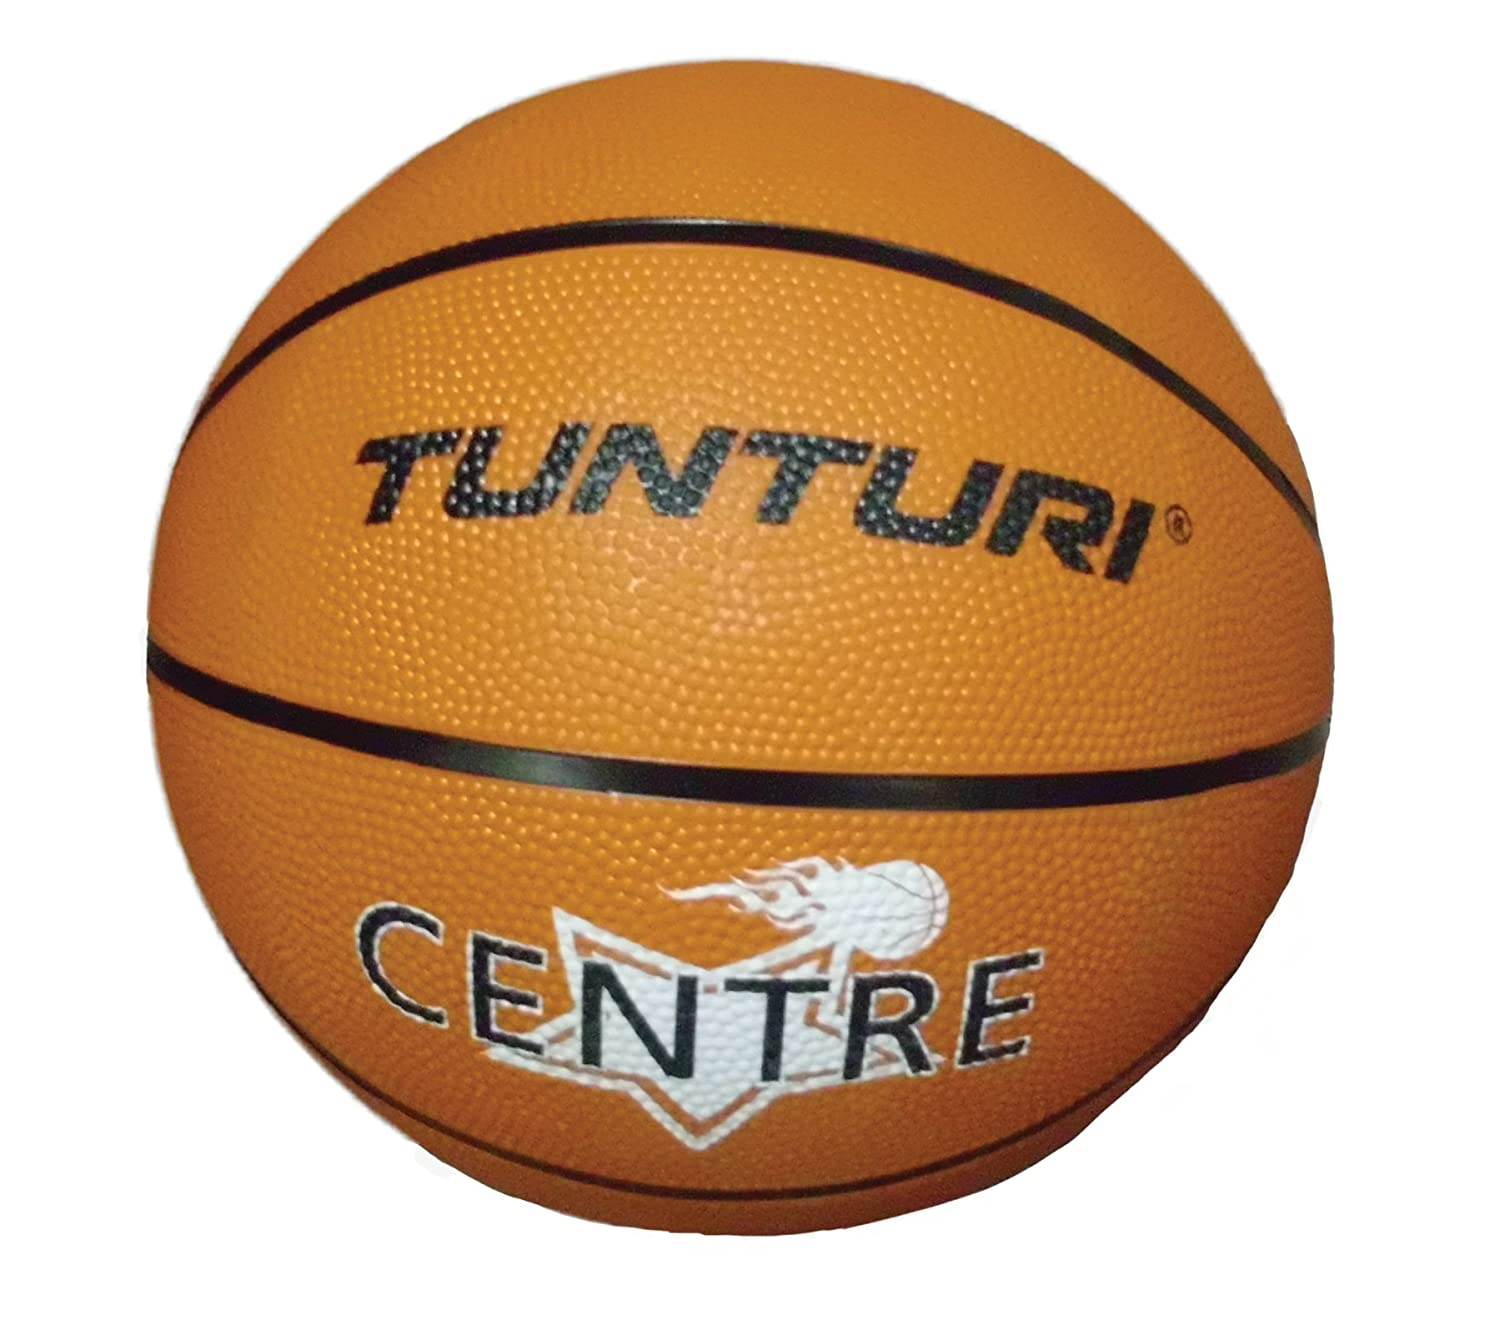 Tunturi 14TUSTE066 Ballon de Basket Mixte Adulte, Orange, 1 TUNTD|#Tunturi